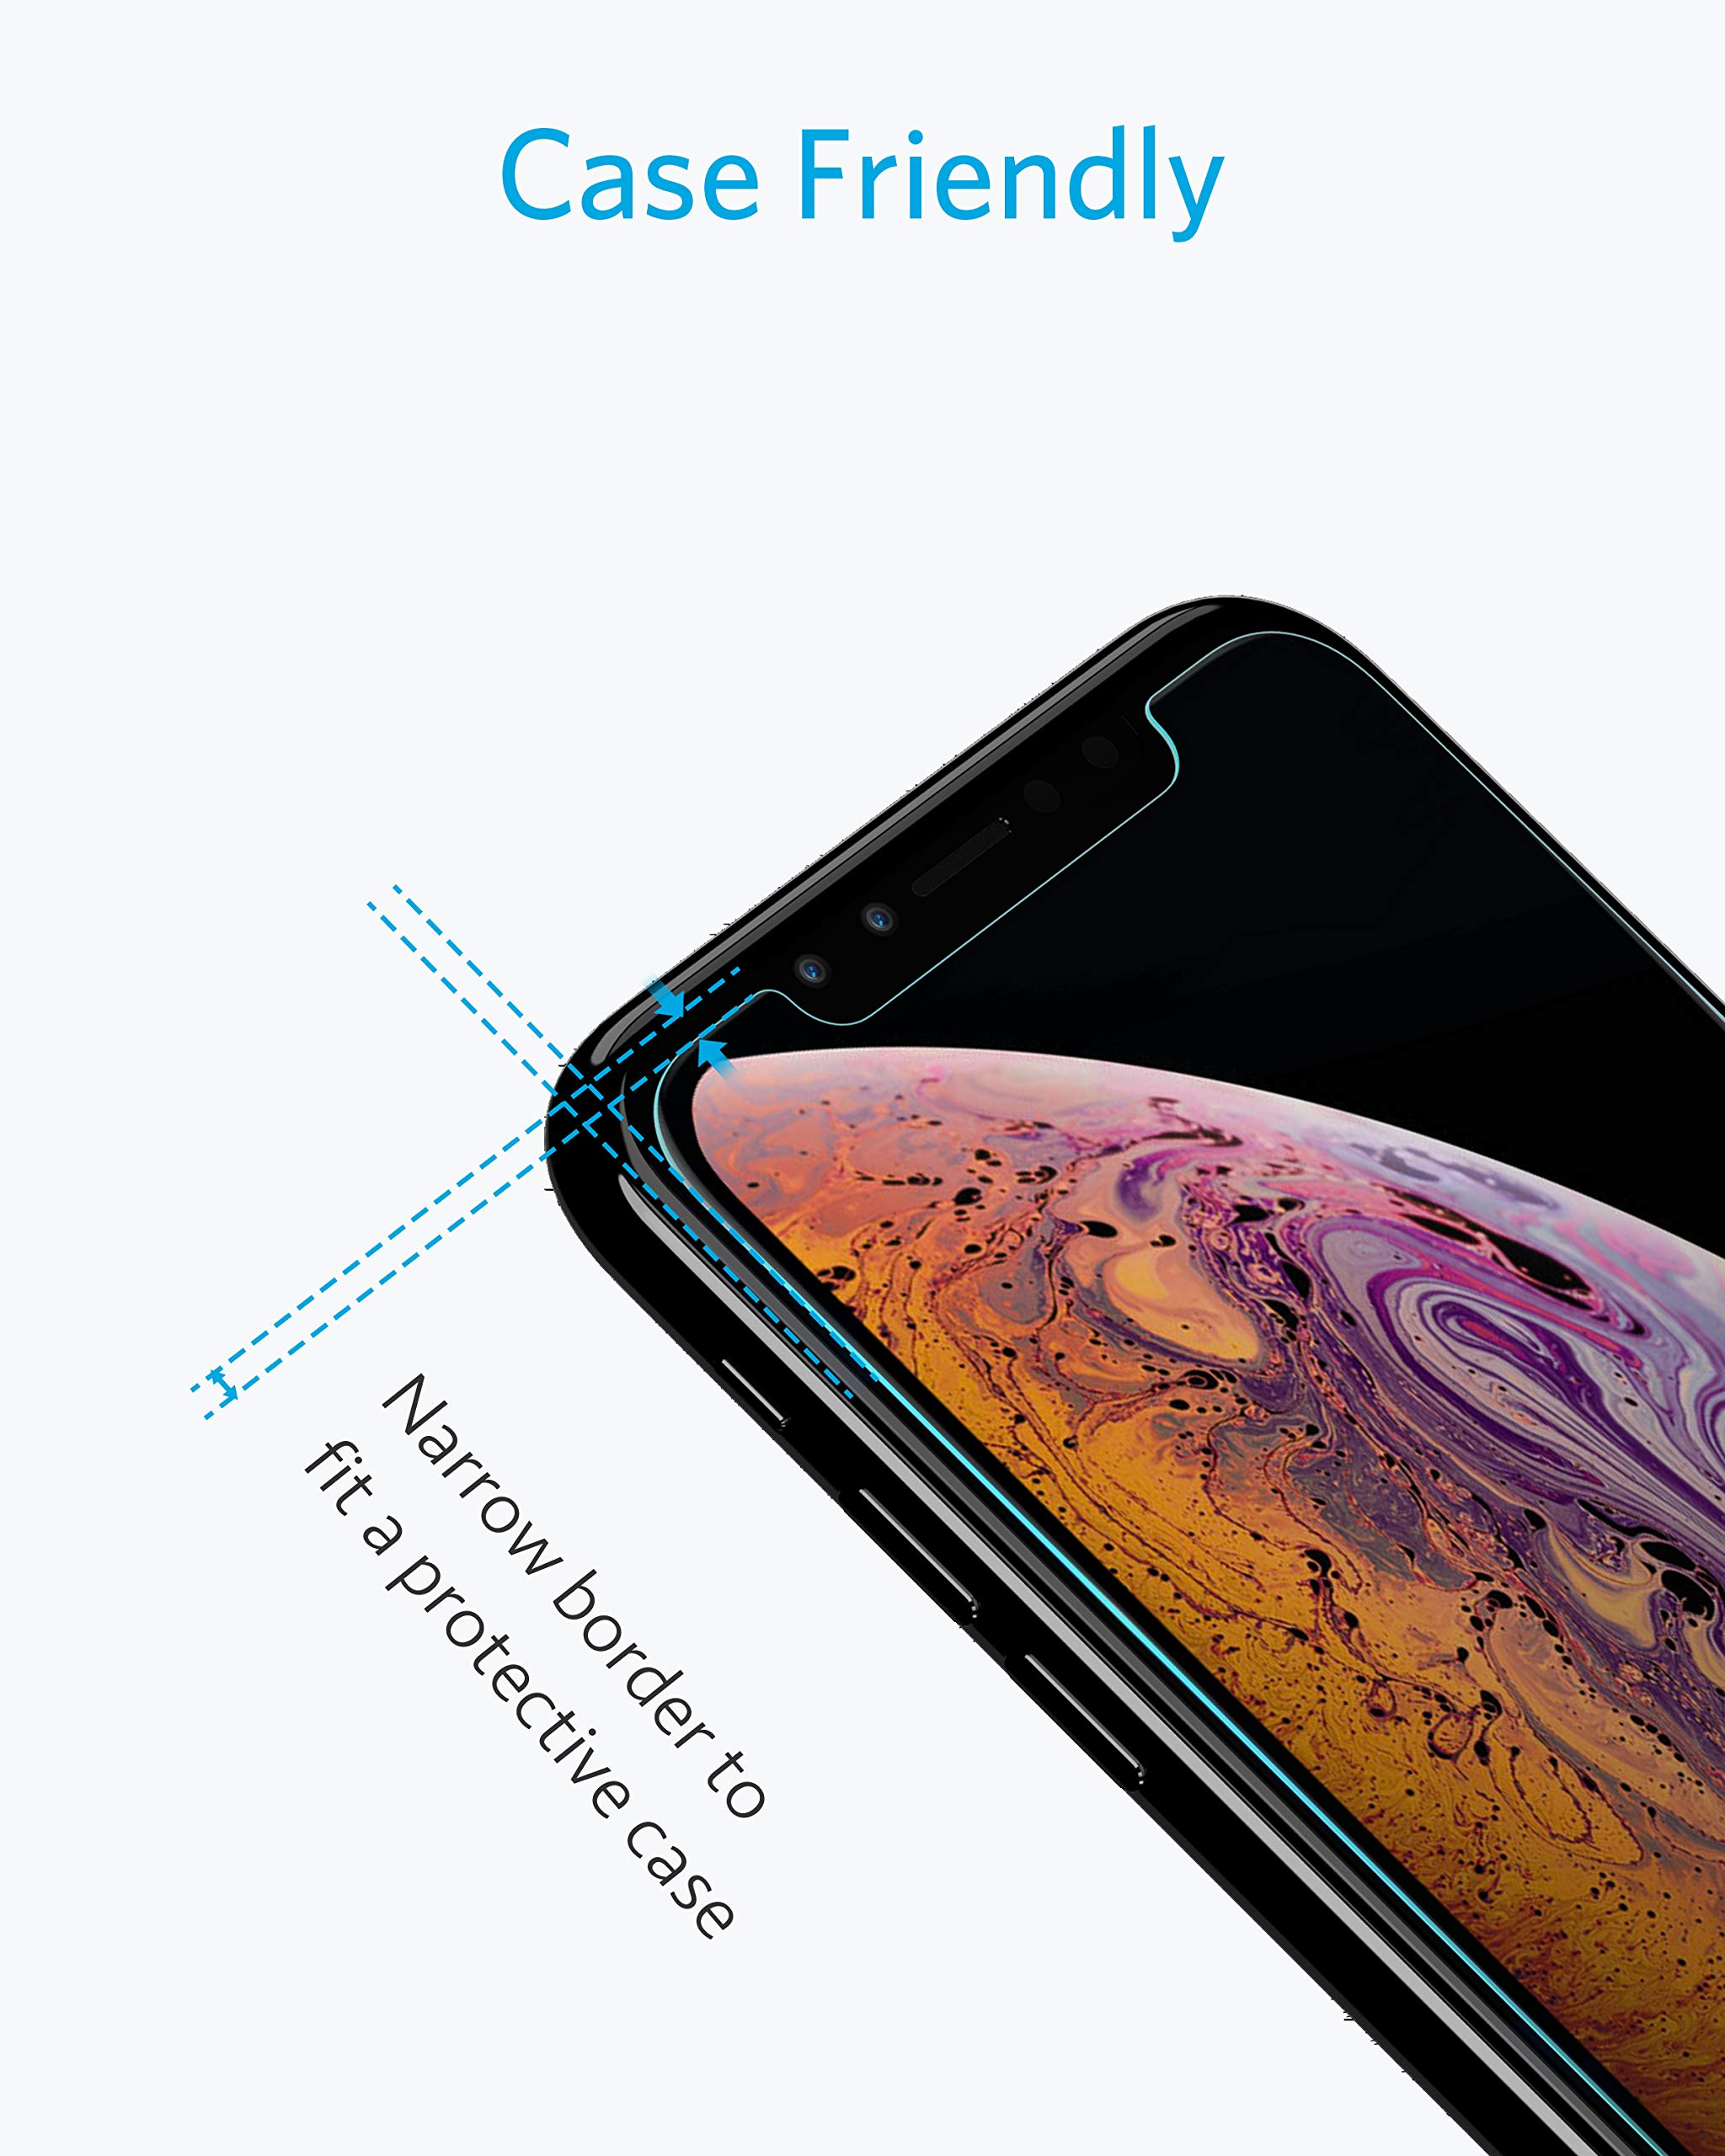 [2 PACK] Anker iPhone X Screen Protector for Apple iPhone X/10 (2017) with DoubleDefence Technology, Tempered Glass, and Alignment Frame for Apple iPhone 10 [Case Friendly]